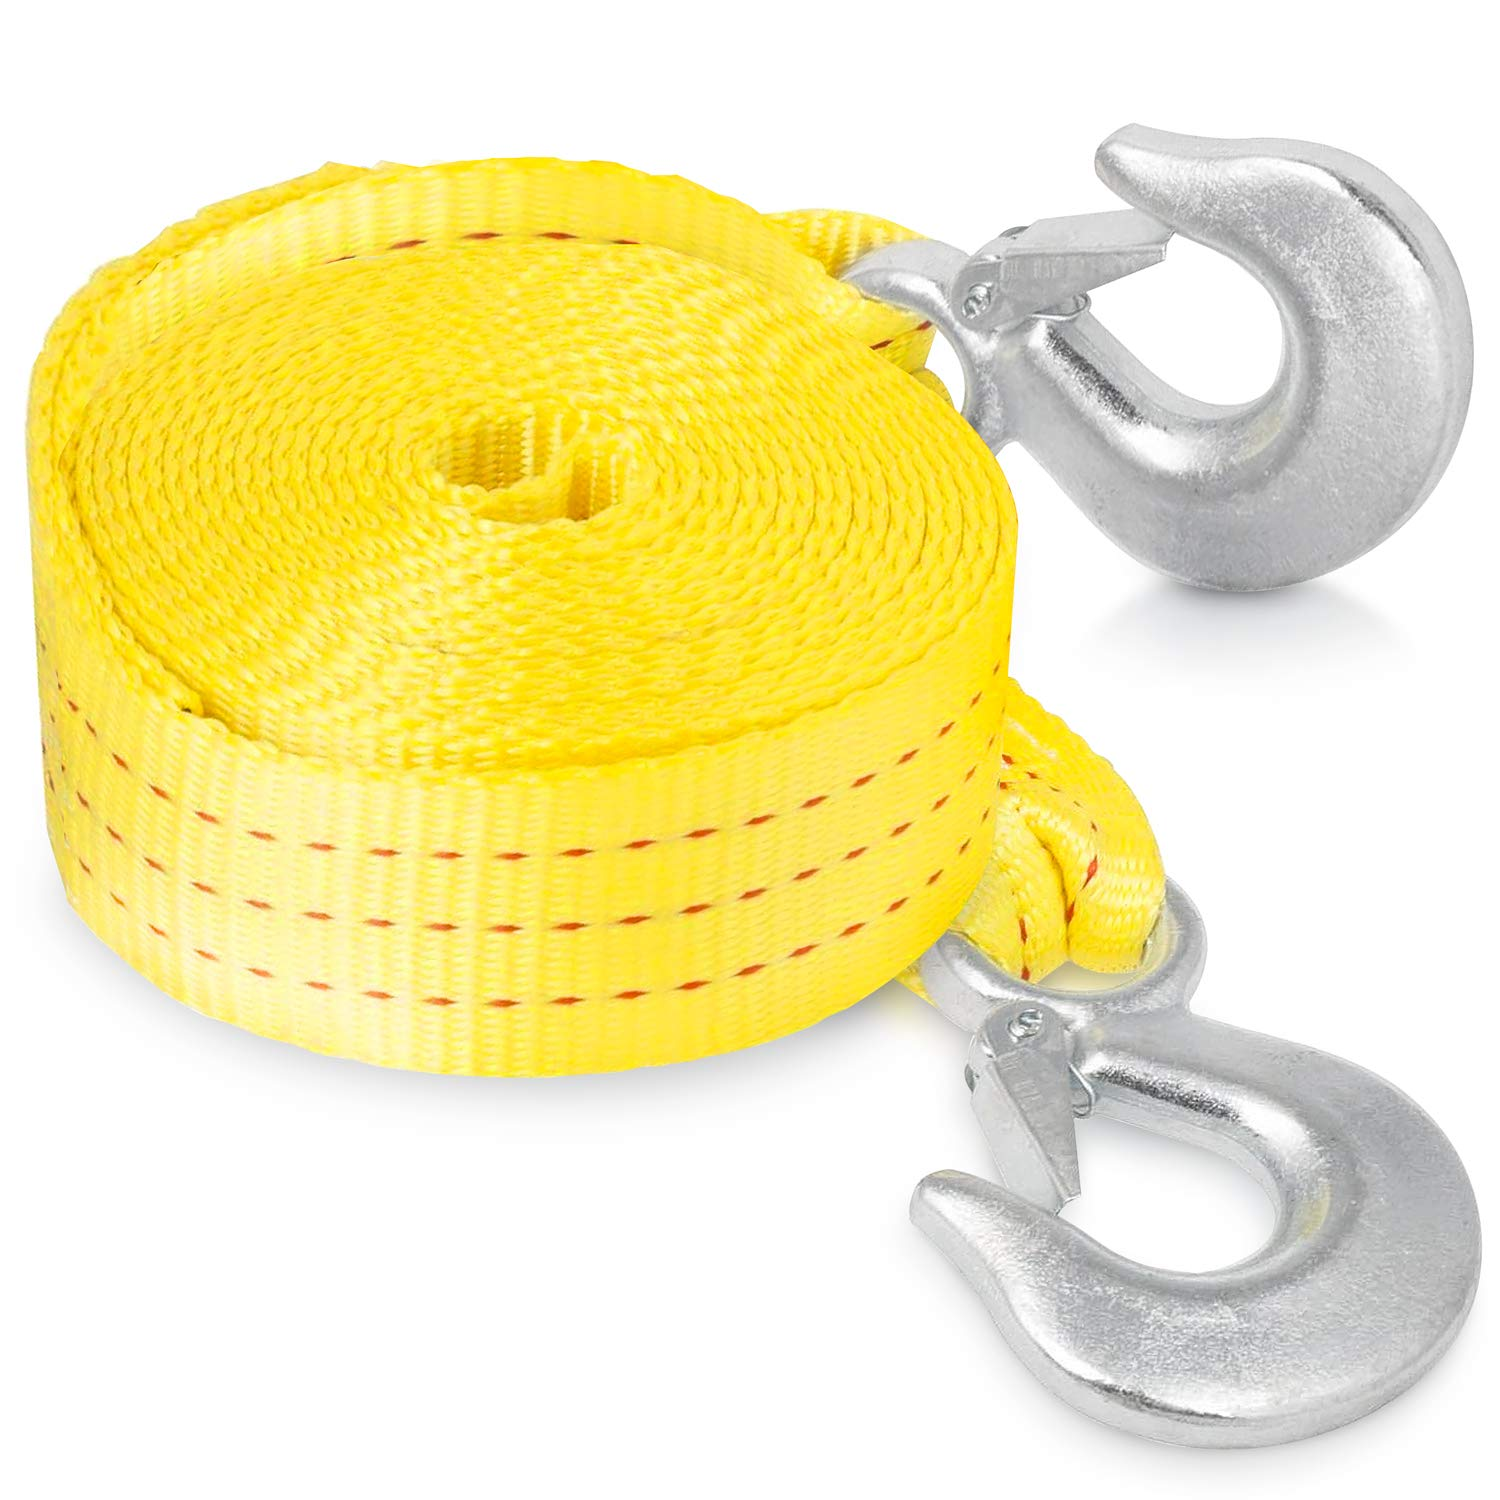 Neiko 51005A Heavy Duty Tow Strap with Safety Hooks | 2'' x 20' | 10,000 LB Capacity | Polyester by Neiko